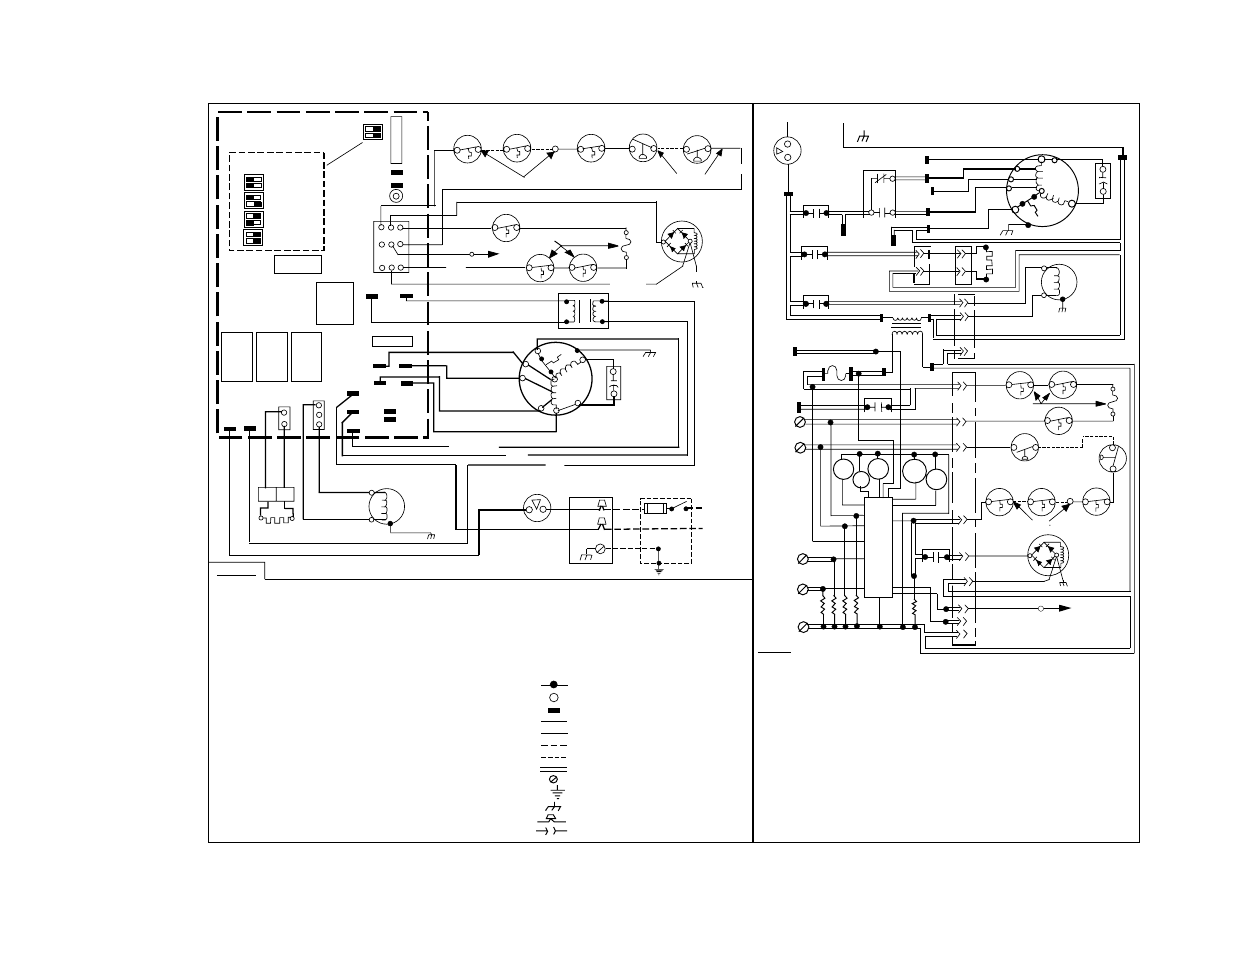 Bryant 80 394u Wiring Diagram : 29 Wiring Diagram Images